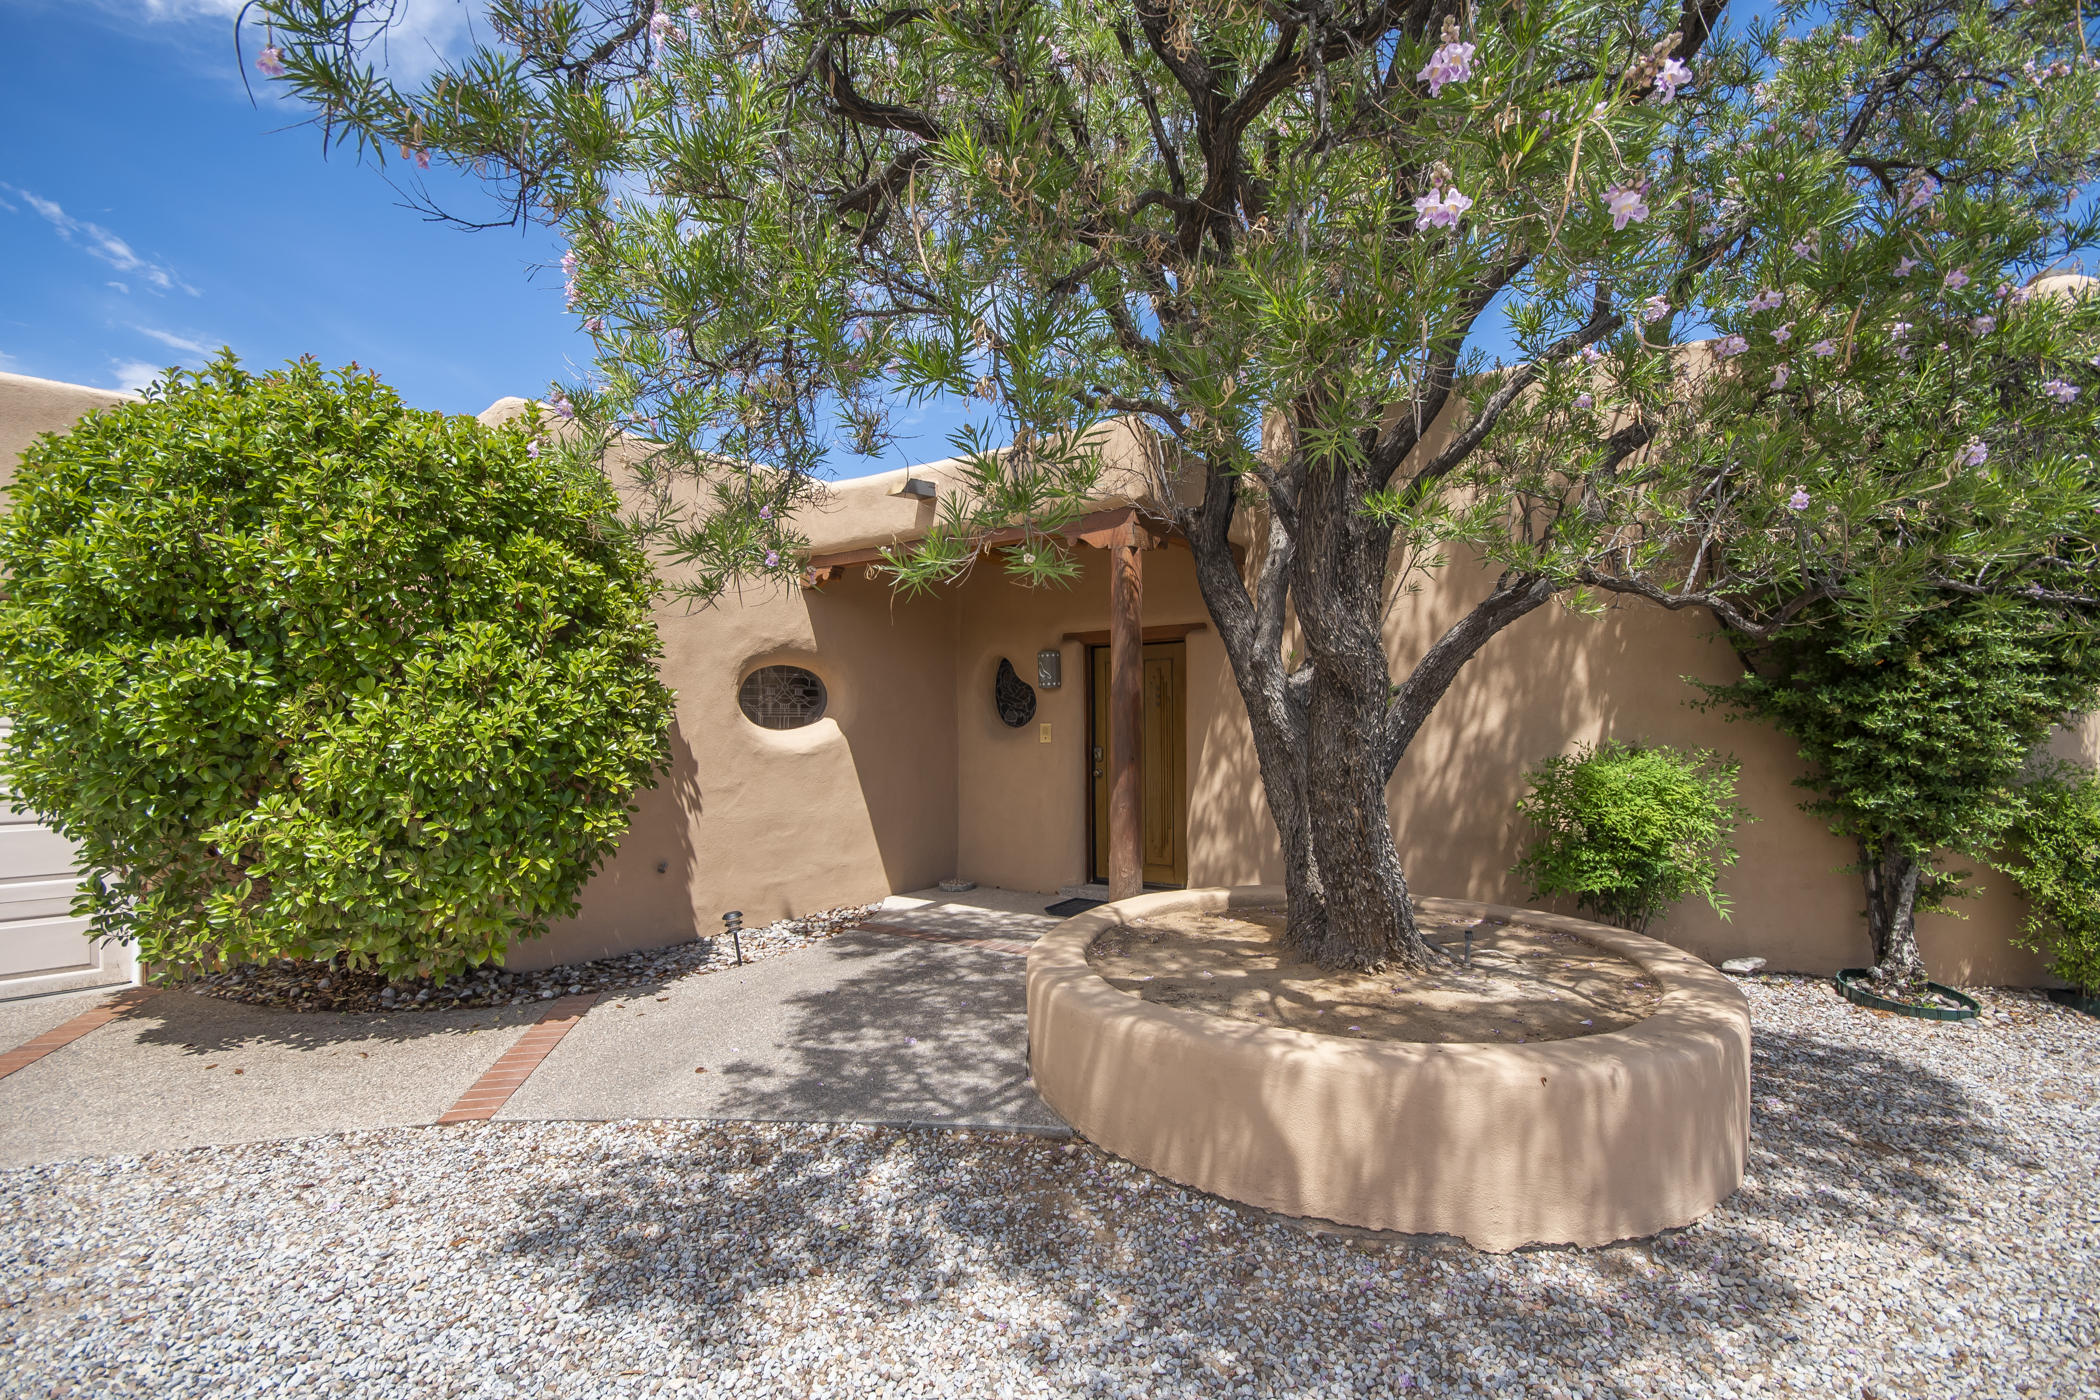 Stunning crescent shaped adobe with panoramic views! Spectacular New Mexico features-Coved, latilla, plank/viga ceilings, hardwood and saltillo floors, three Kiva fireplaces with bancos, custom stained and leaded glass windows, wood casement windows,breakfast nook with built in banco and custom made table, sculpted adobe inside and outside walls. Just wait until you see the Master Bedroom Suite and the living areas with walls of windows looking out to breathtaking views of the Sandias and a sparkling pool iniviting you to take a dip! Adding to the outstanding value are new kitchen appliances, newer TPO roof with a warranty, and a dining room plus office/study with built in cabinetry. Watch the VIRTUAL TOUR! You must experience it to believe it!